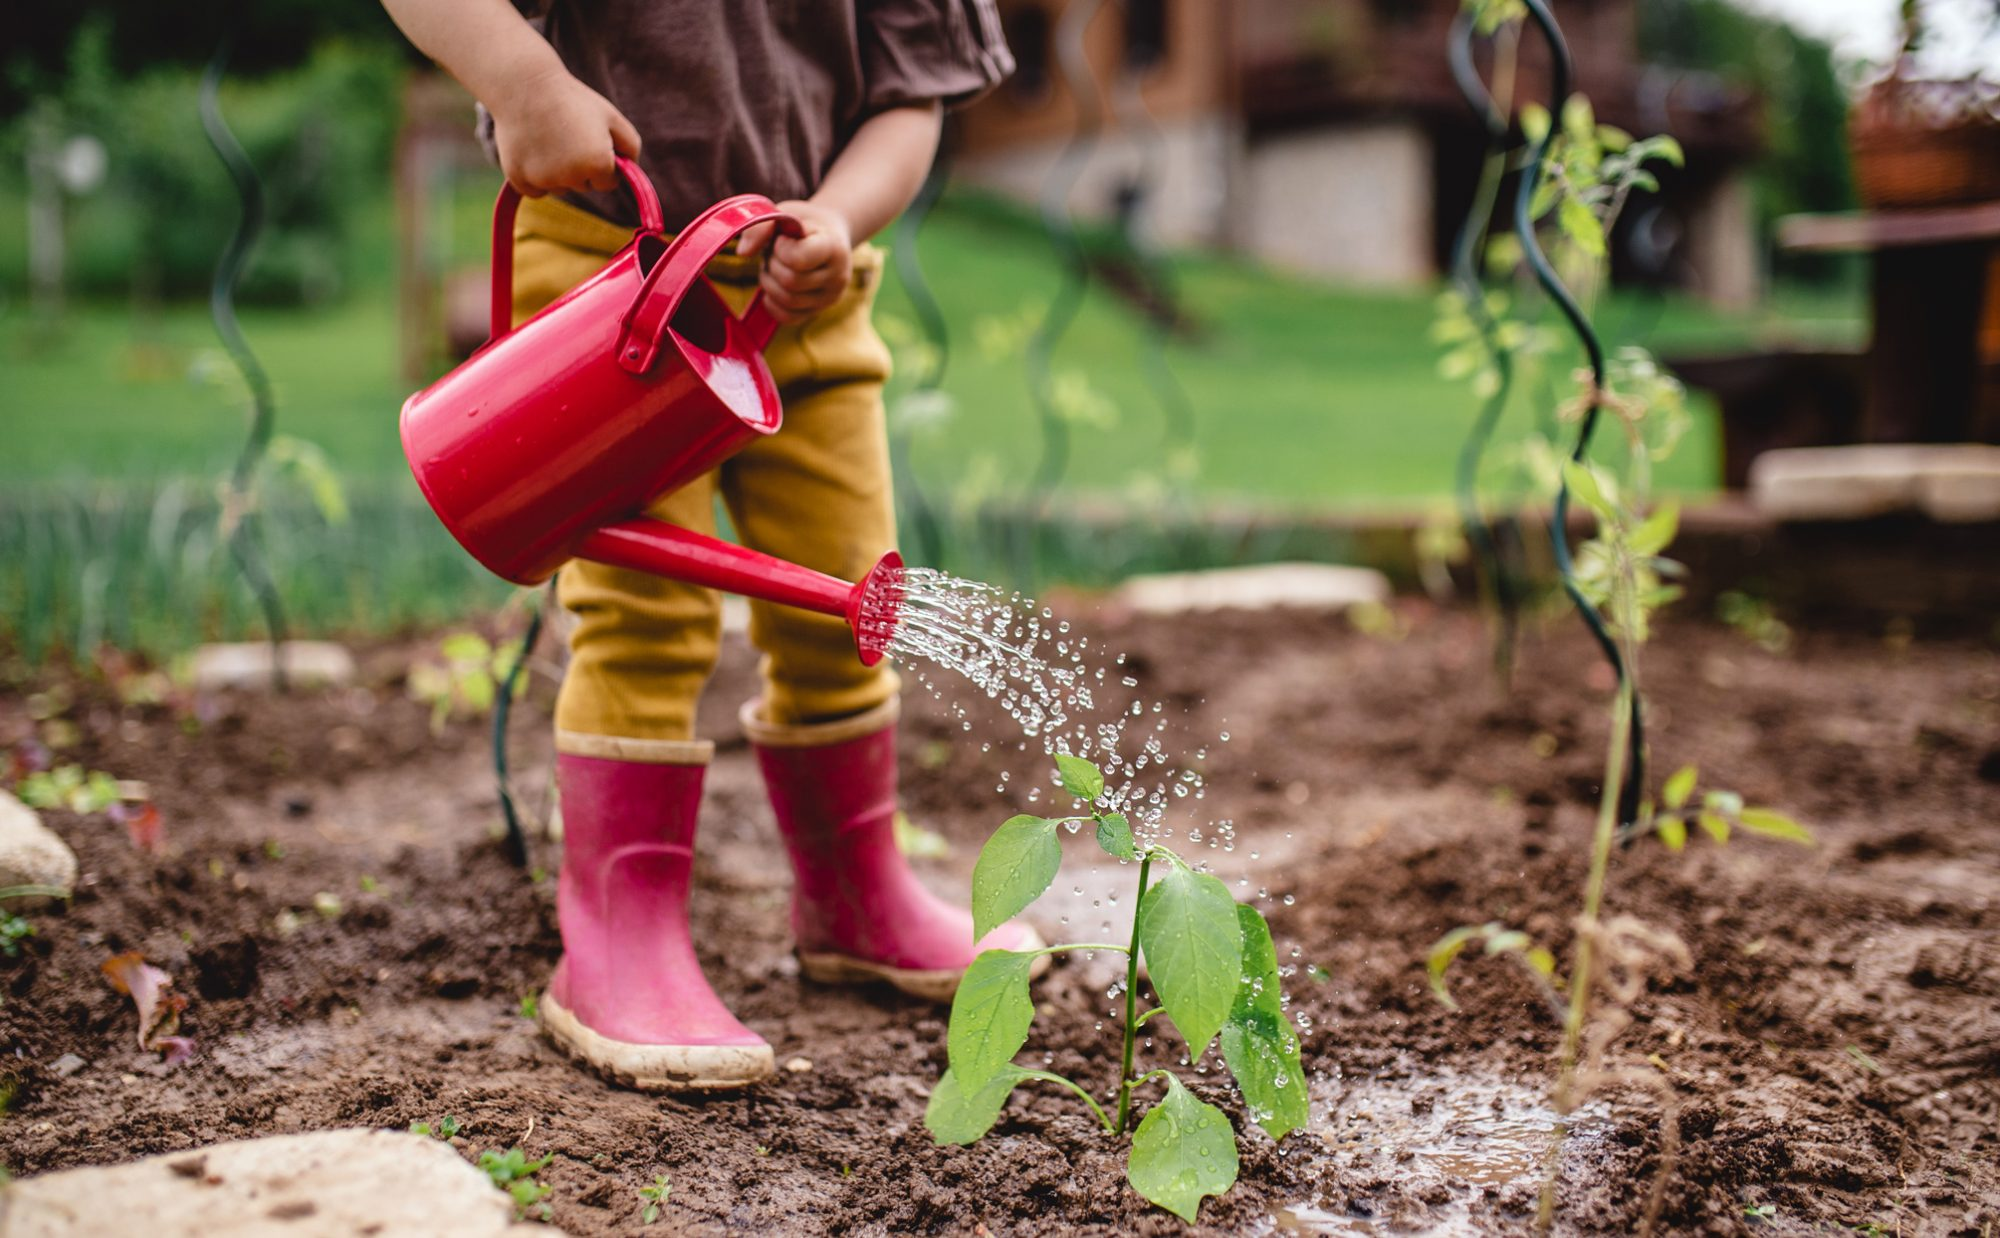 small child in red rain boots using red watering can in garden